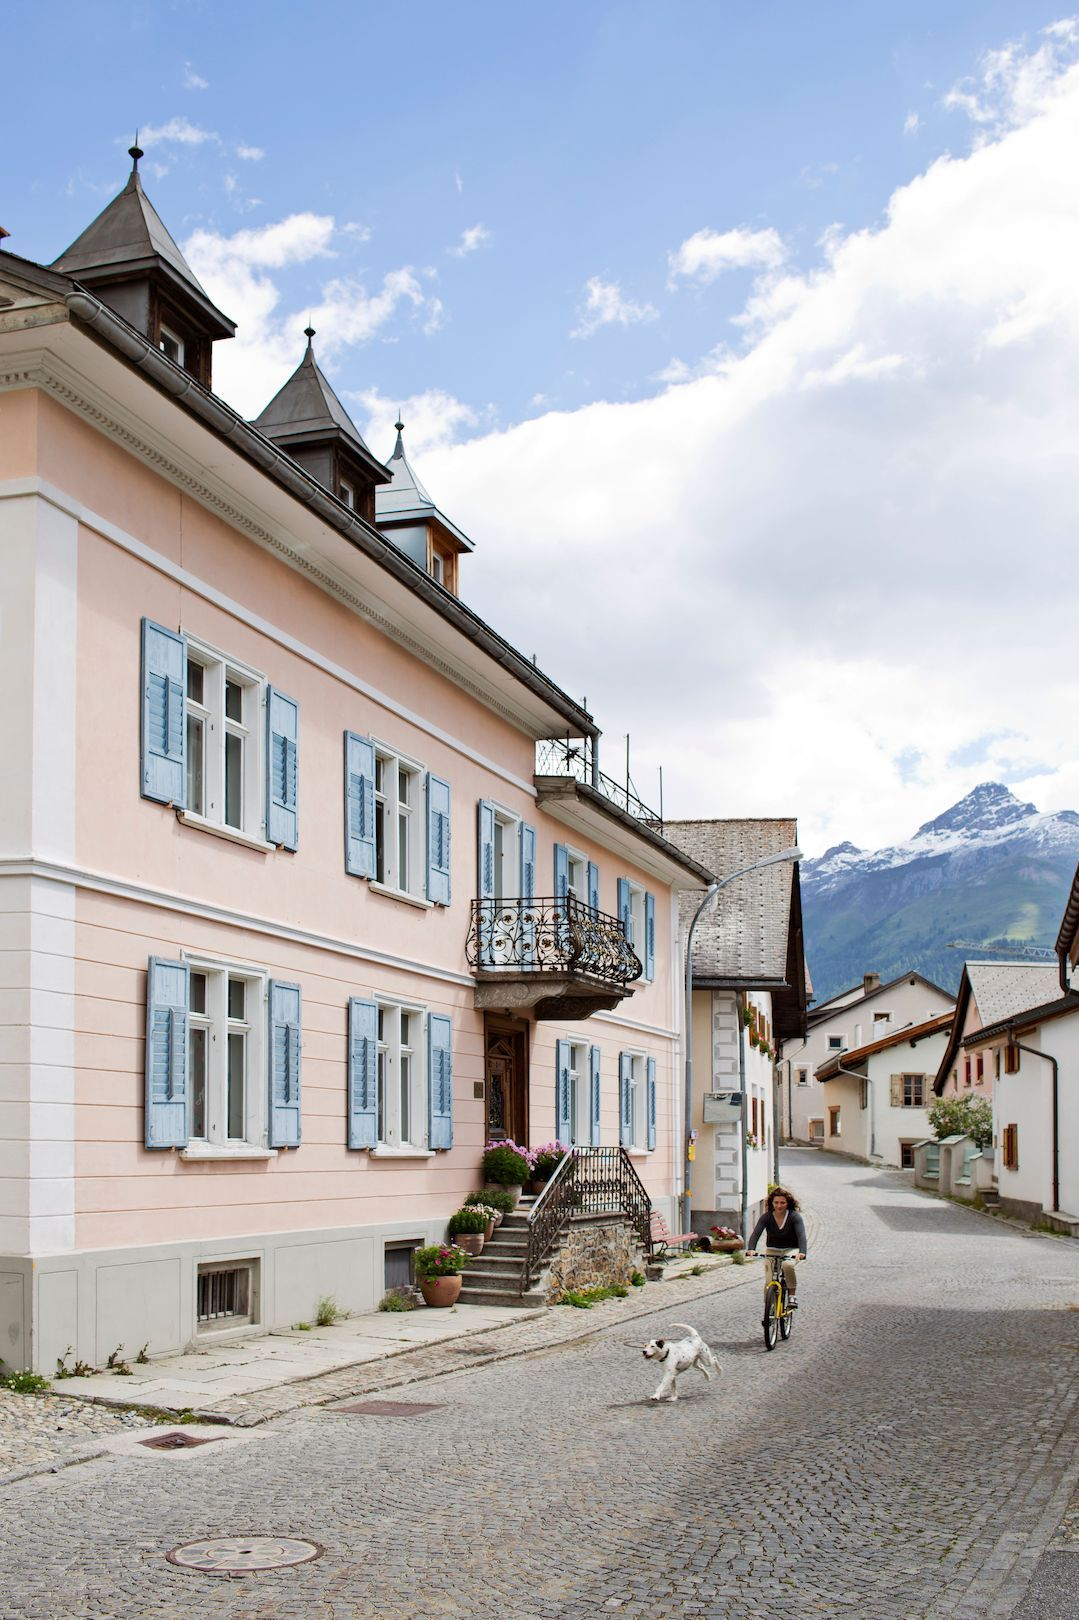 Villa Flor Engadin  - boutique townhouse